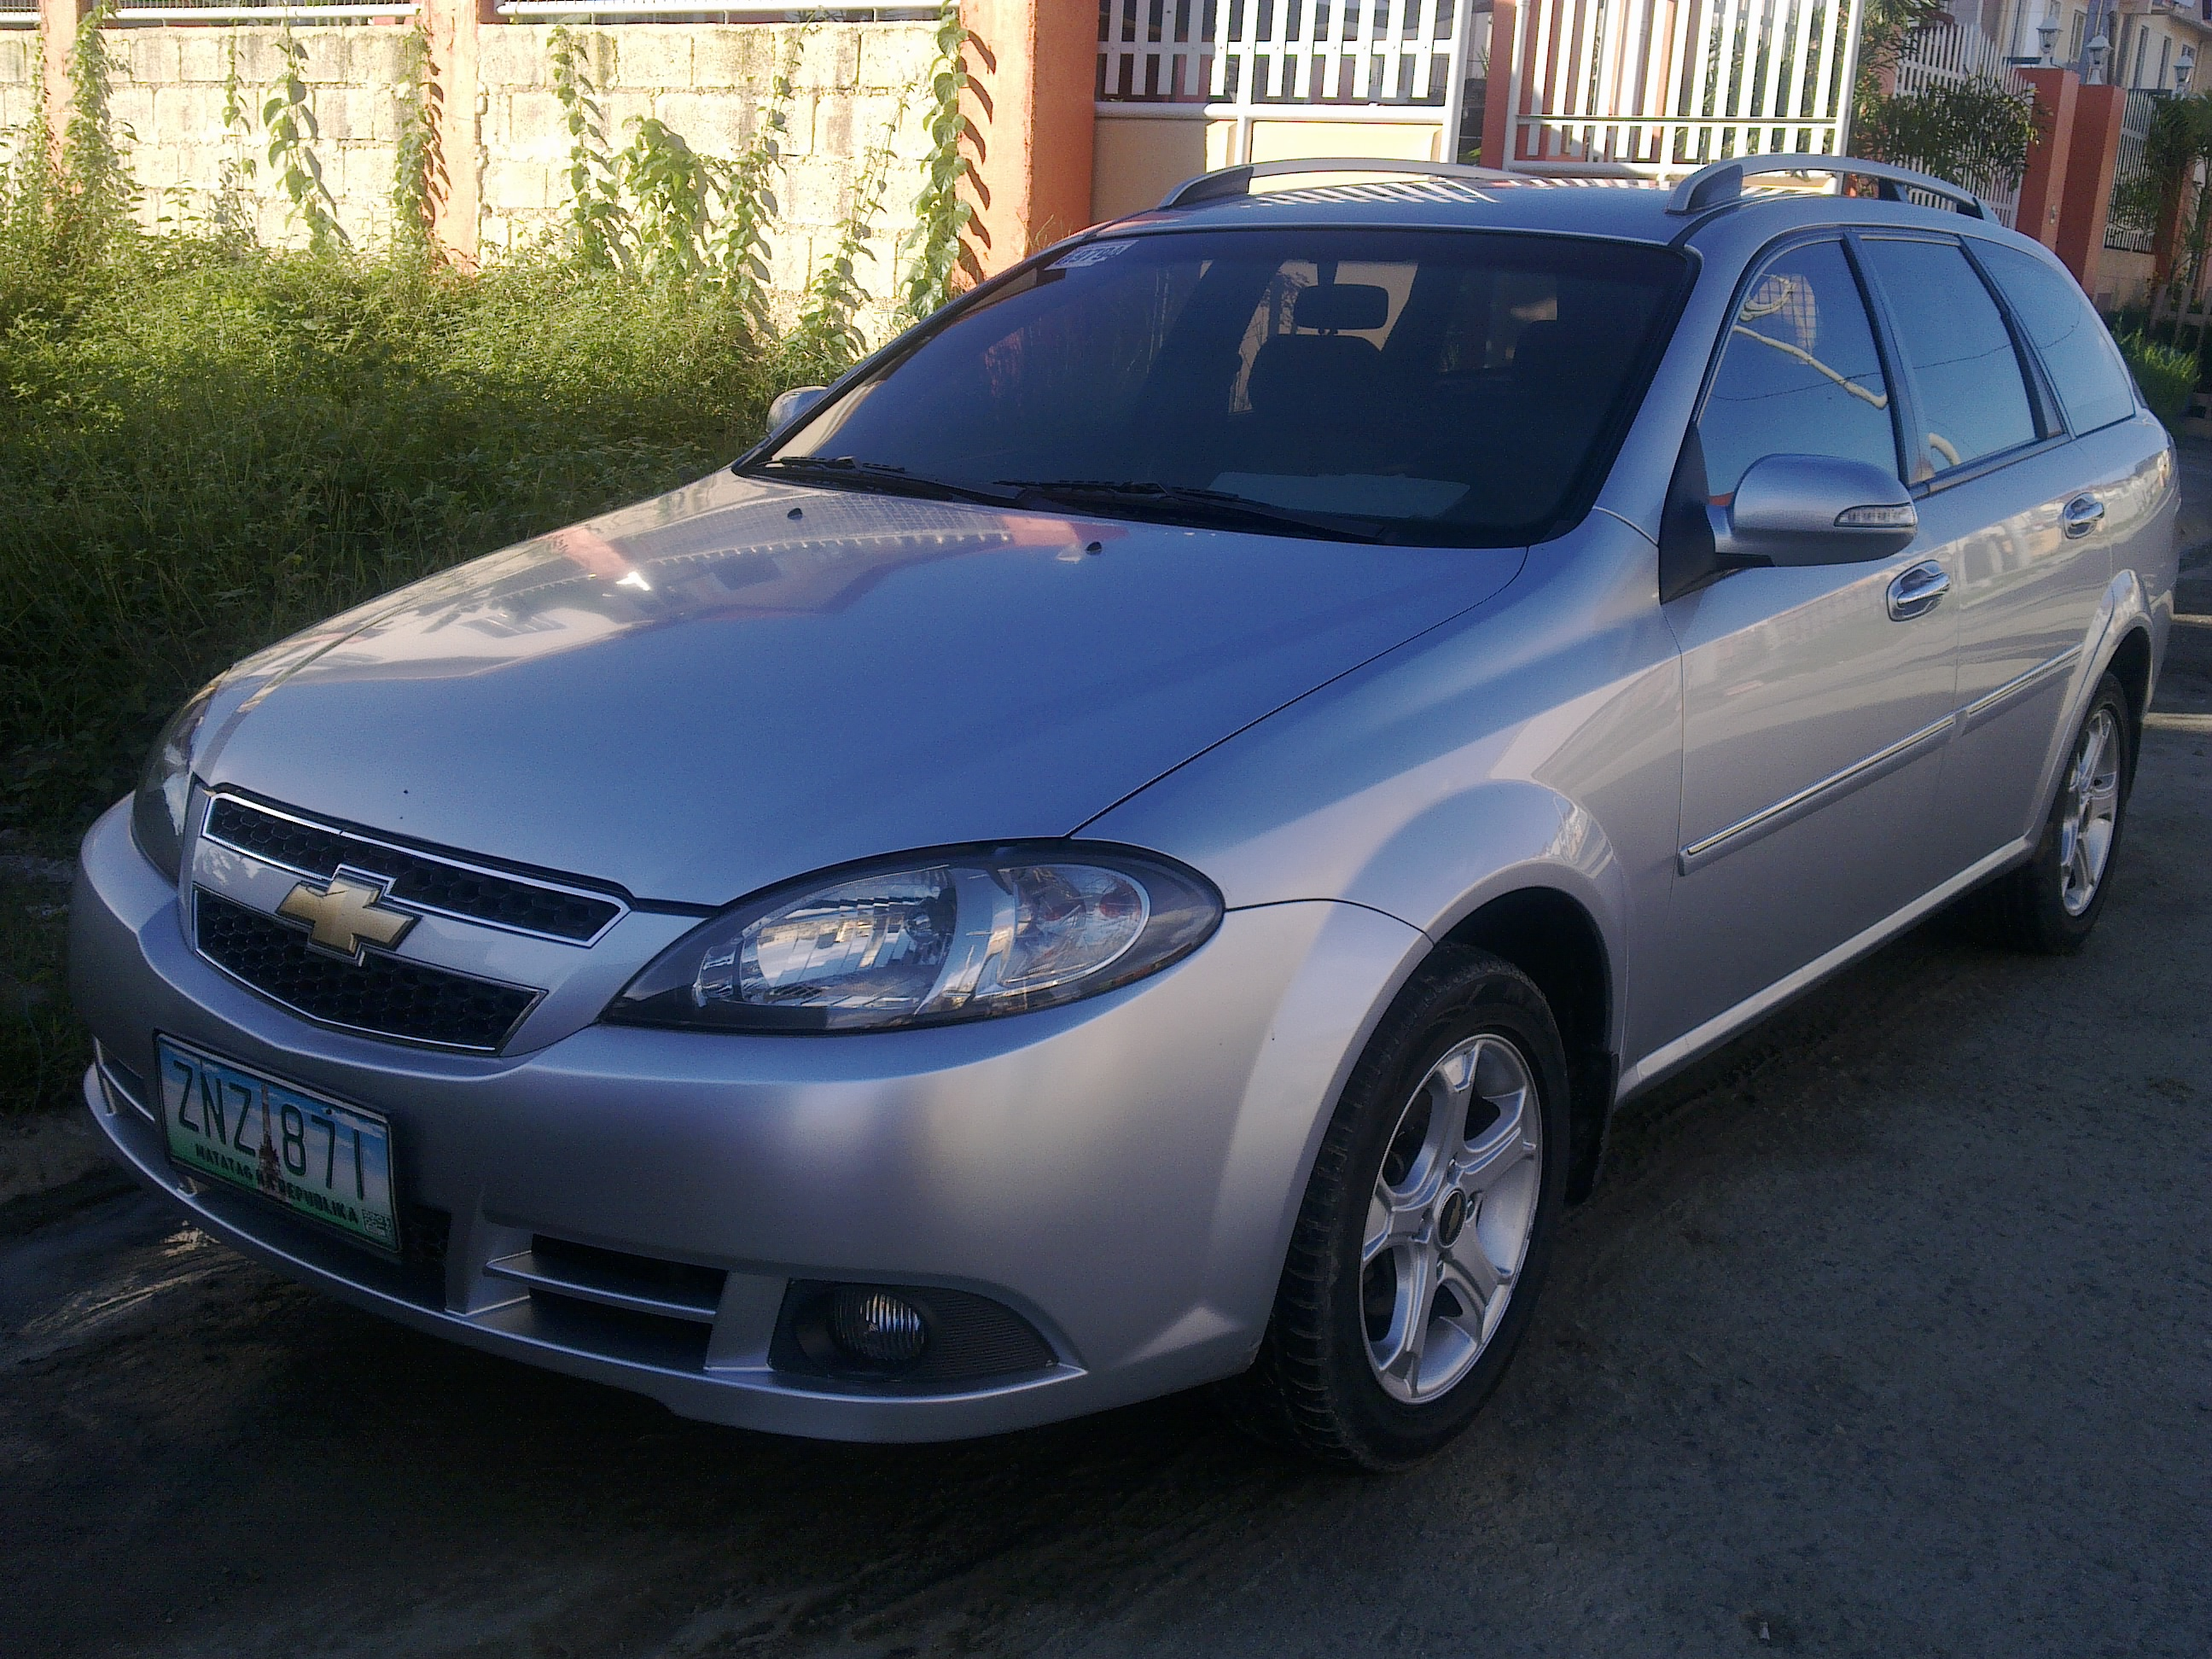 FOR SALE: CHEVROLET OPTRA WAGON 2008 MODEL